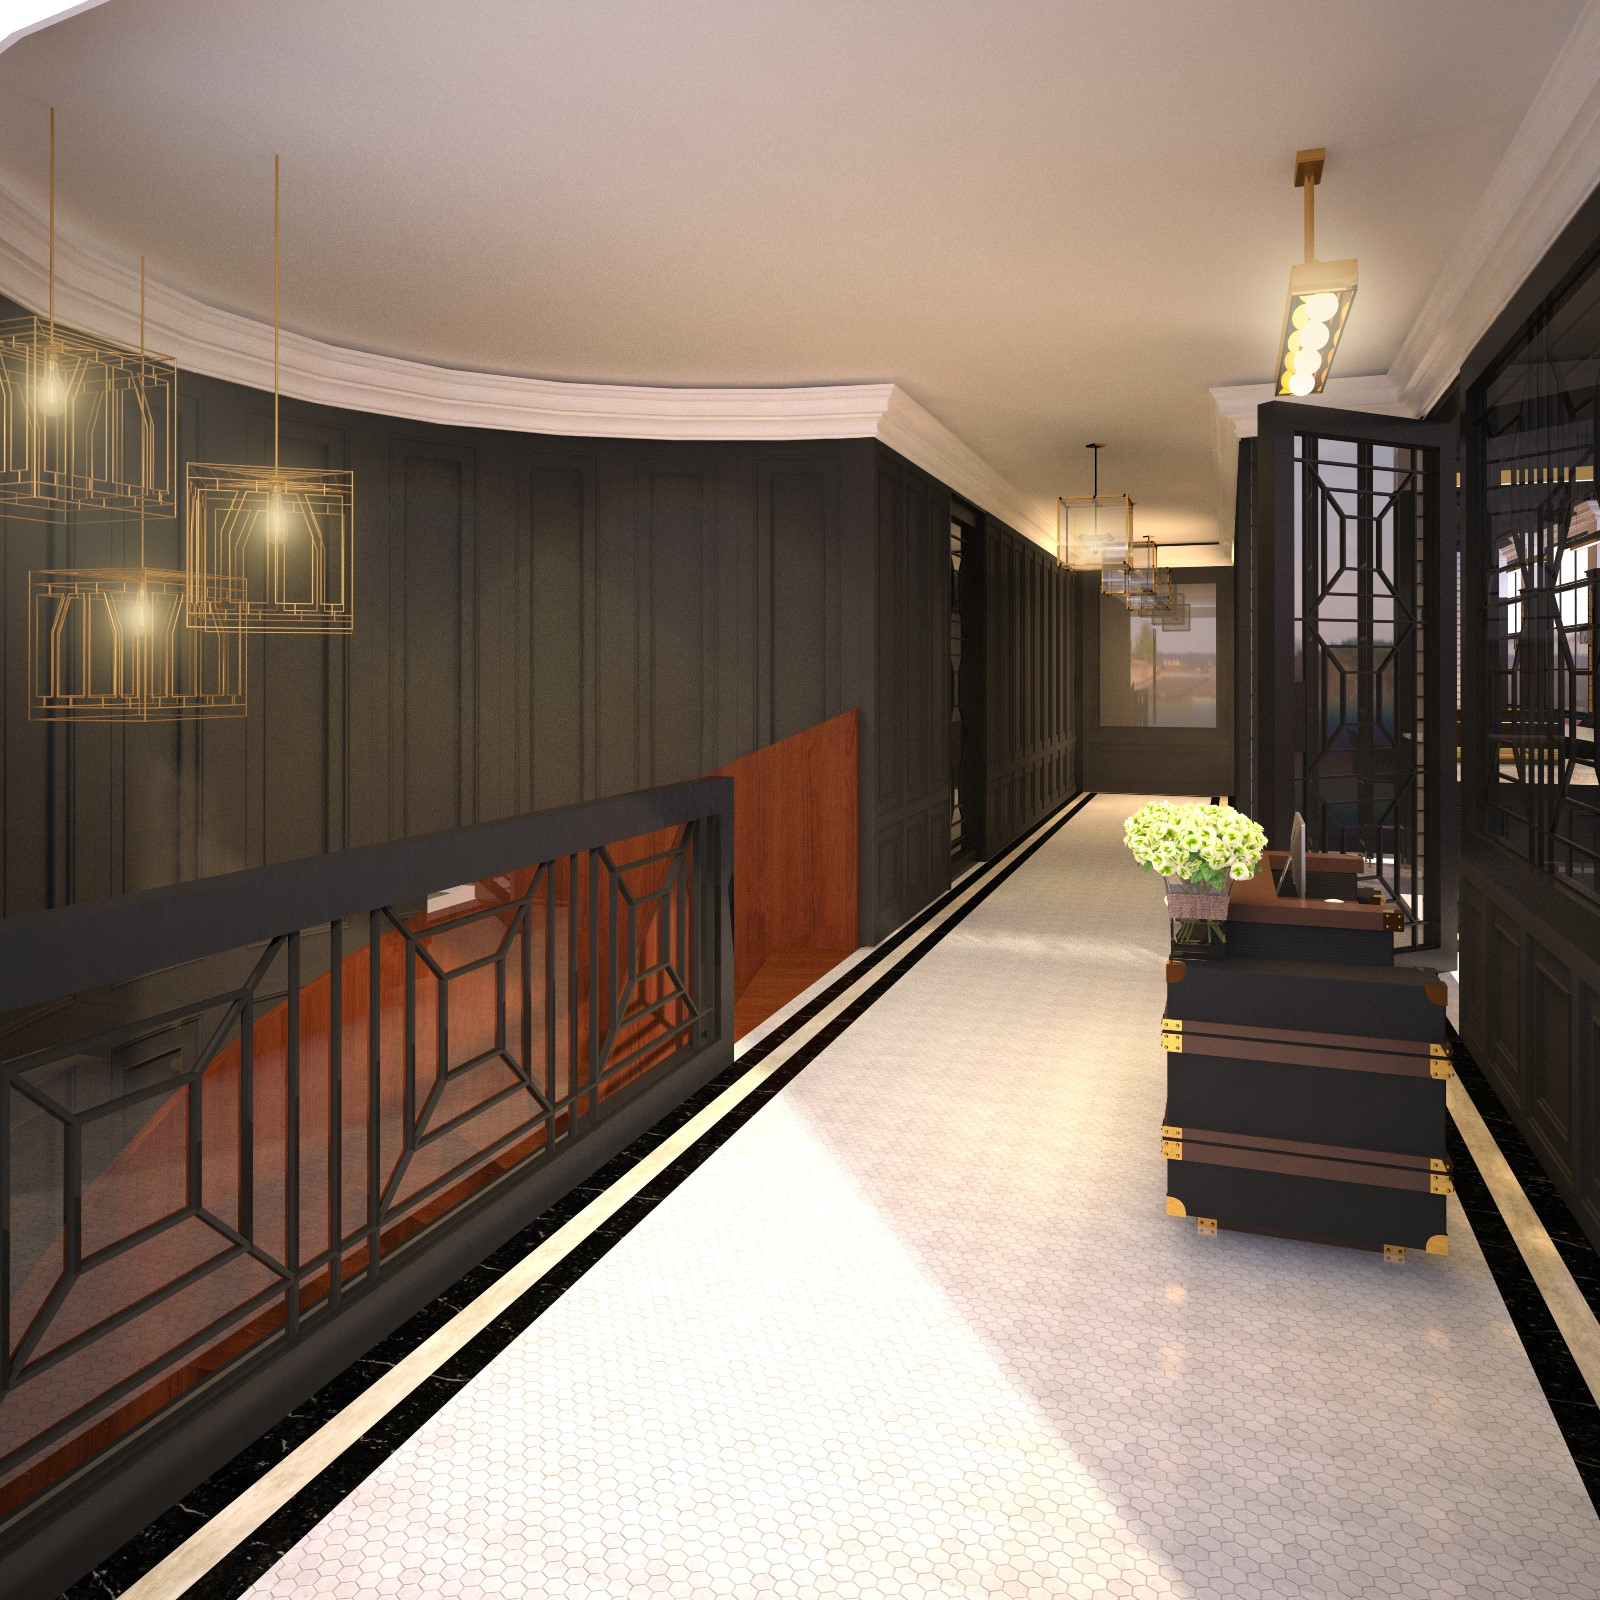 BOUTIQUE HOTEL \ FINANCIAL DISTRICT, NY